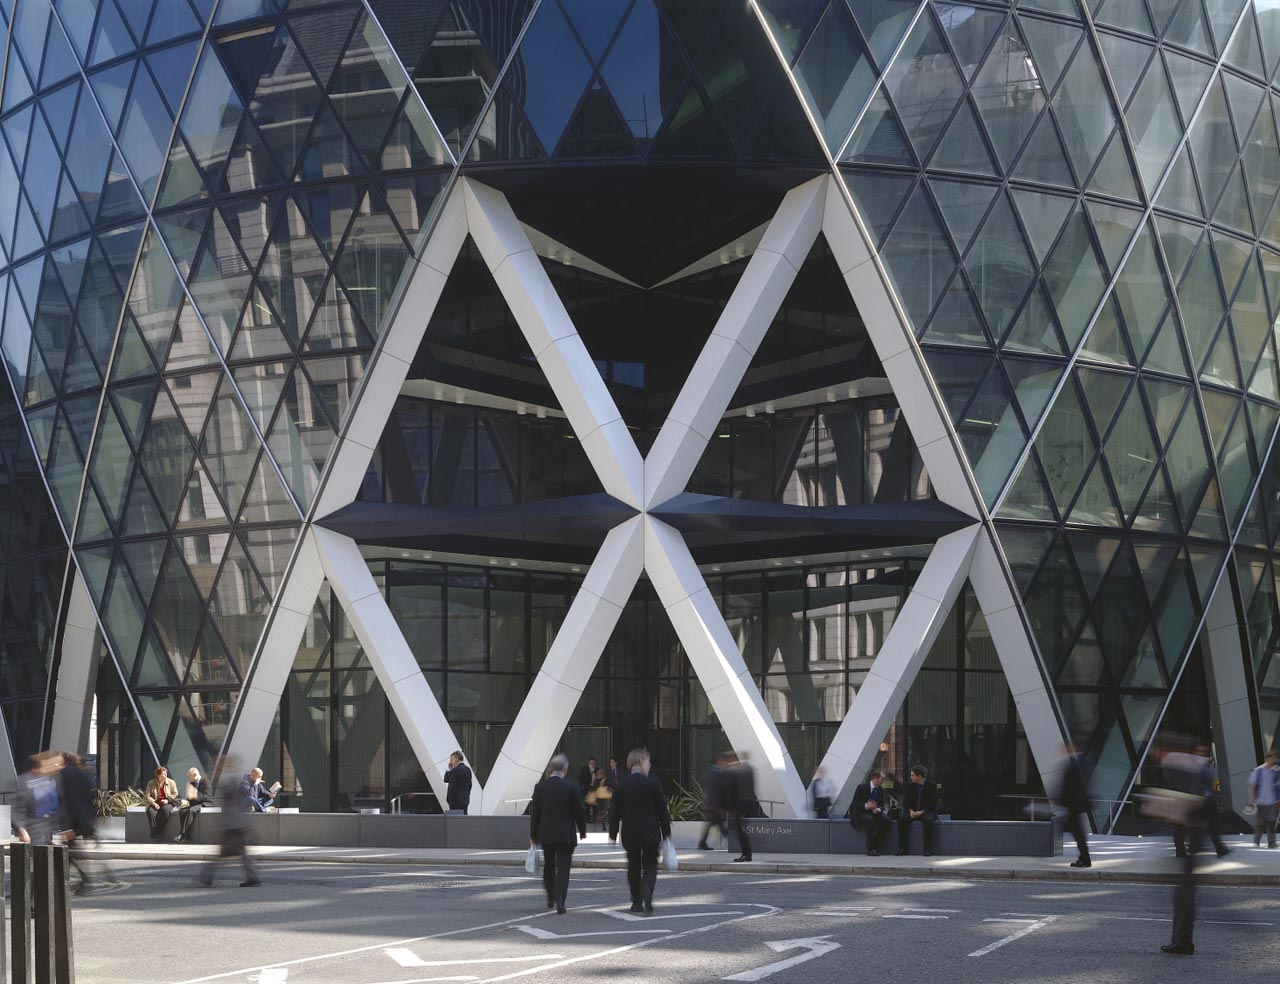 30 St Mary Axe Modern Architecture London | Urban Splatter